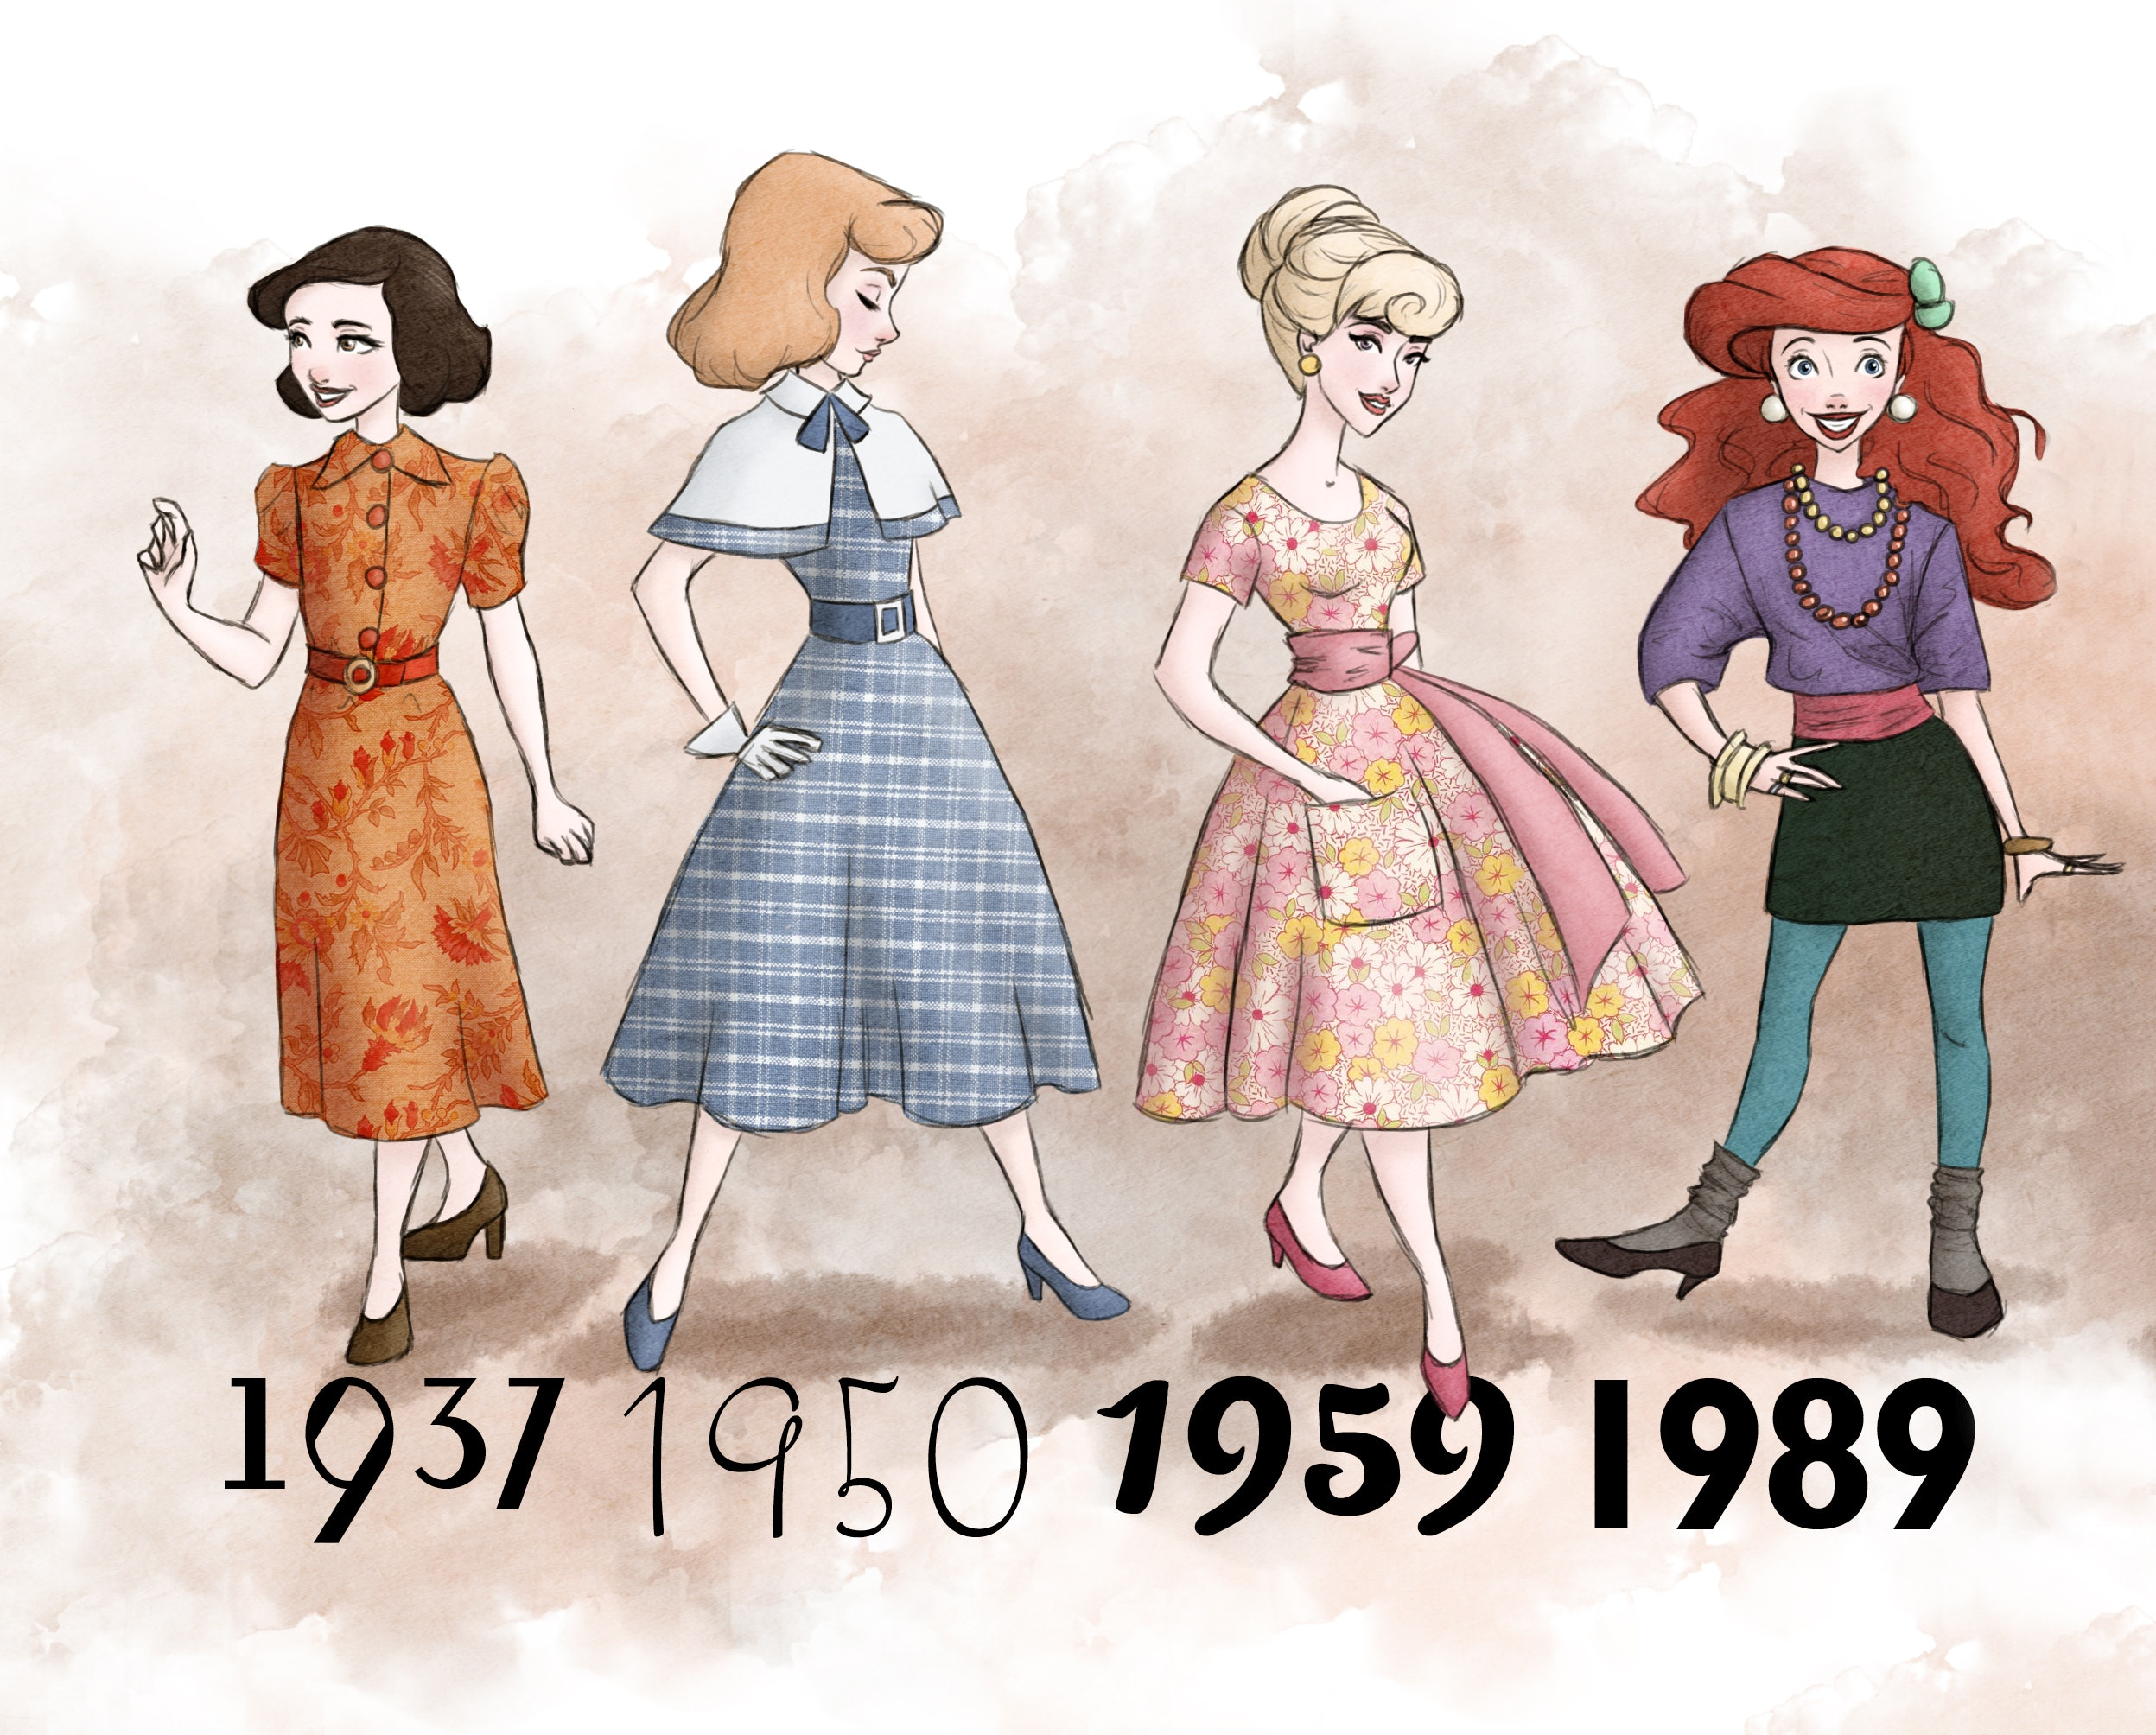 What Disney Princesses Would Have Worn Through The 20th And 21st